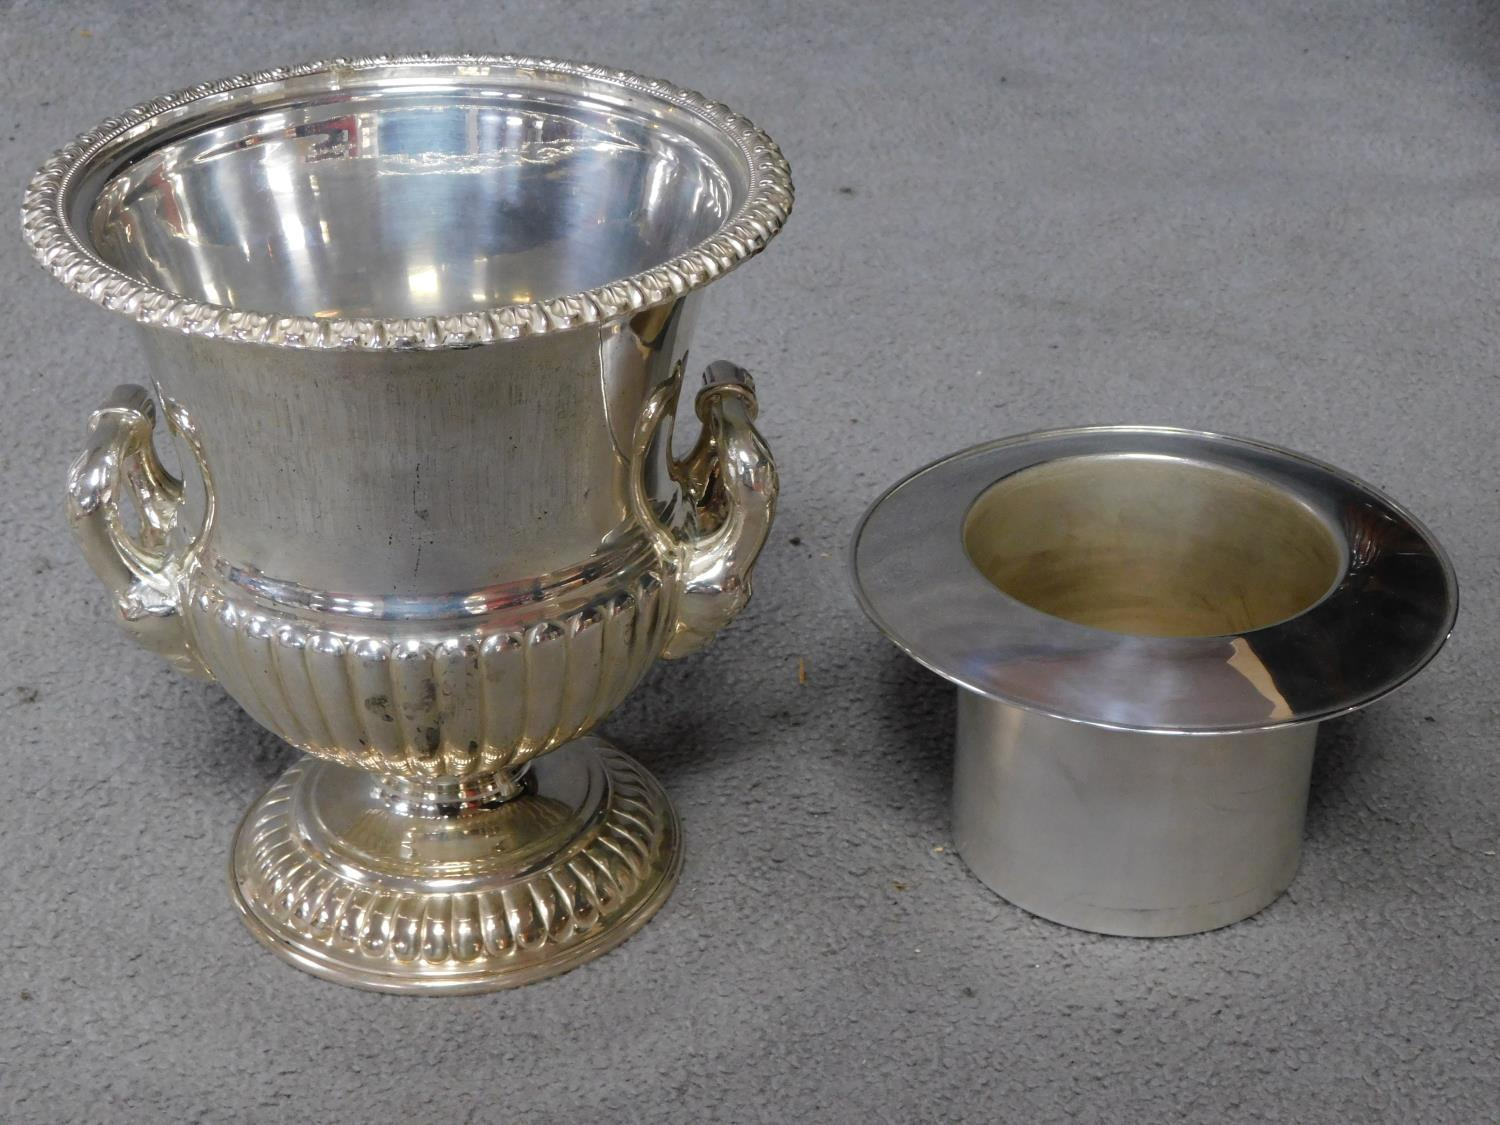 A pair of antique Old Regency Sheffield silver plated wine coolers by Henry Wilkinson and Co. with - Image 5 of 6